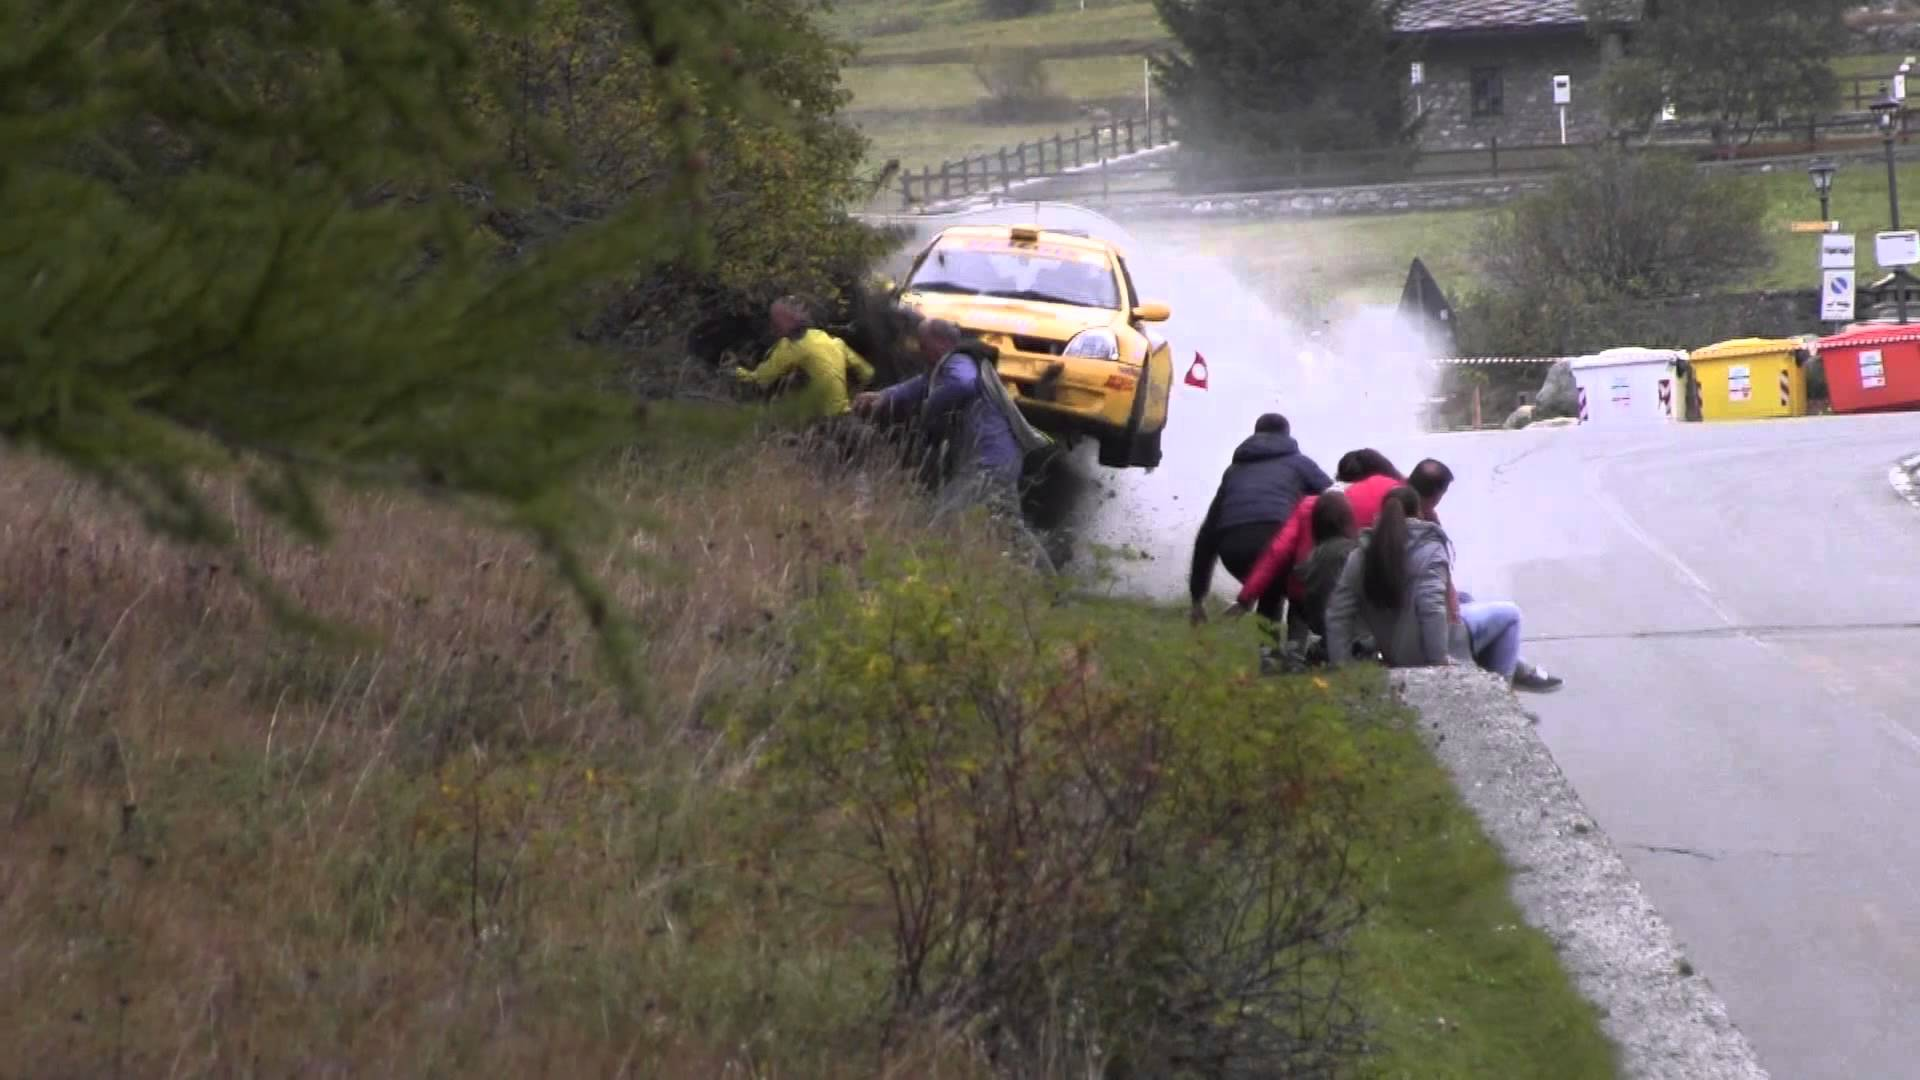 Terrifying Rally Car Crash Caught on Tape in Italy